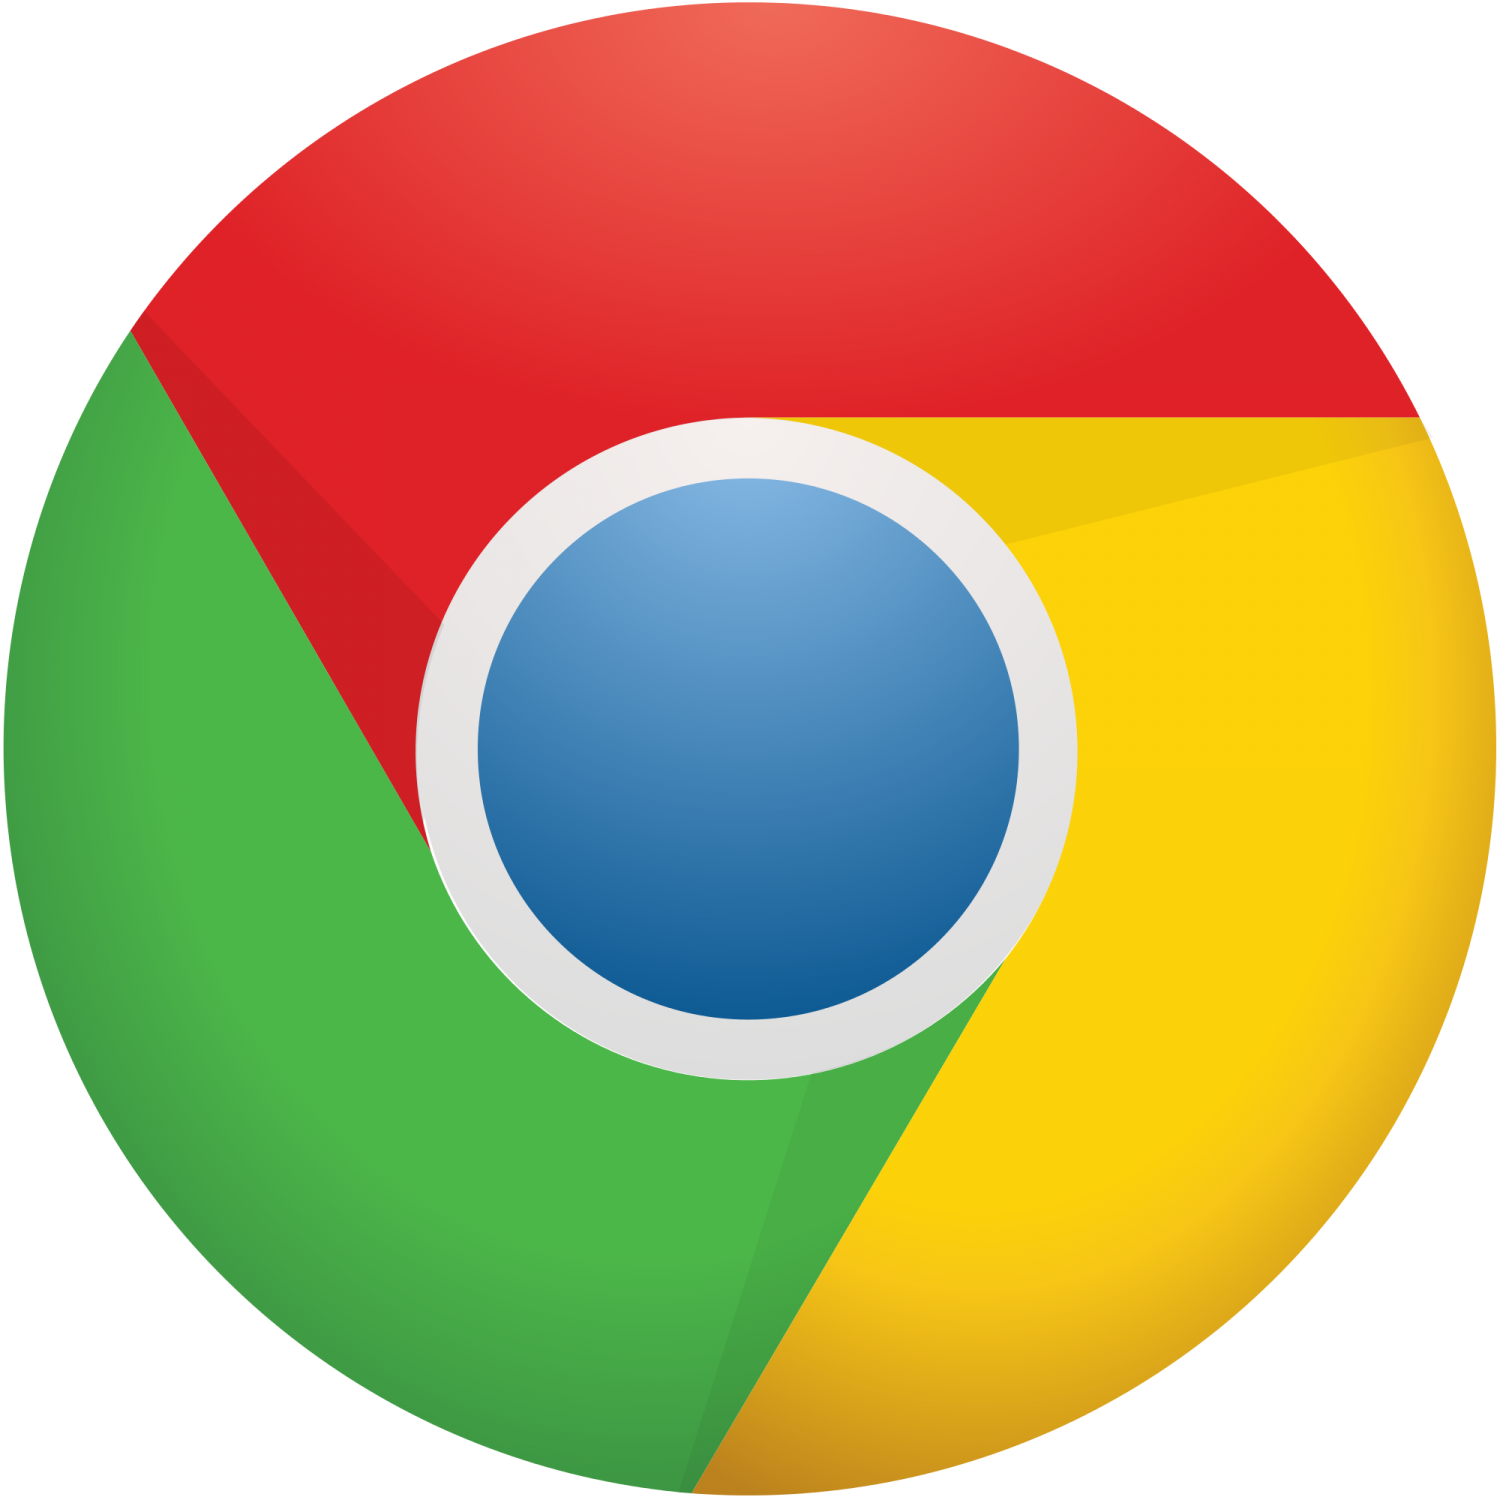 How to Disable Chrome Browser Notifications on Android